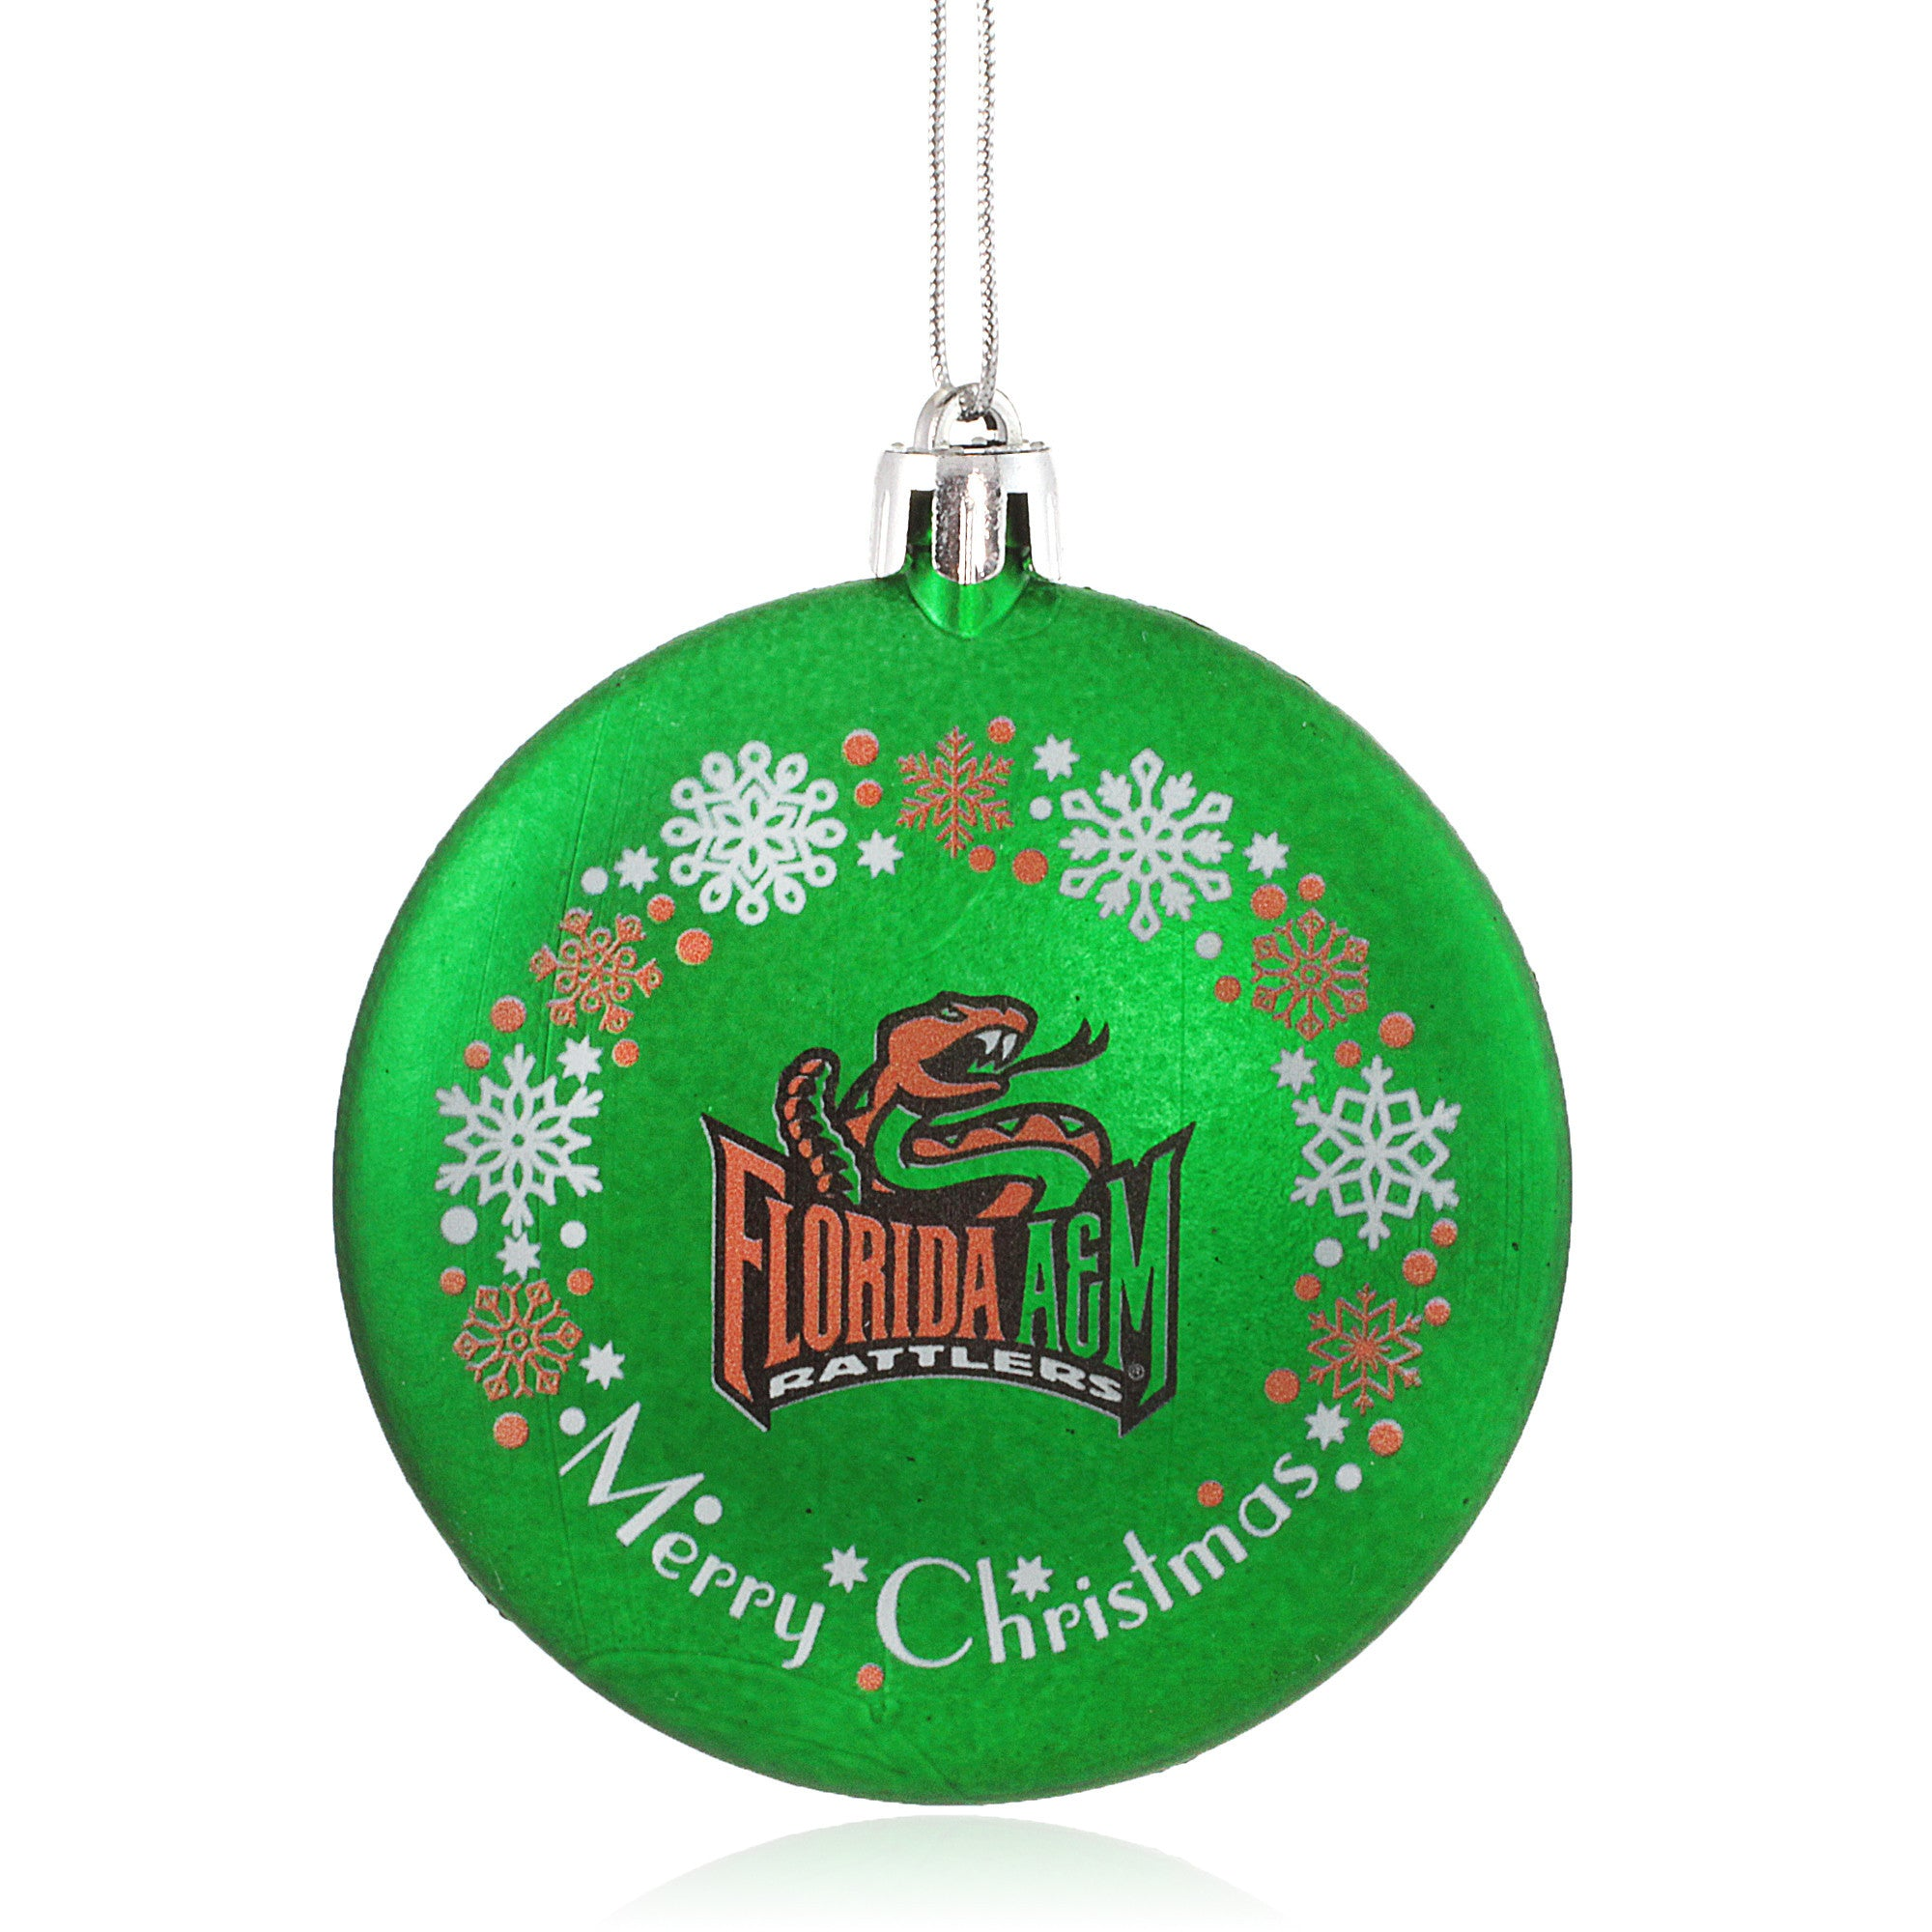 Florida A&M University Rattlers Christmas Ornament